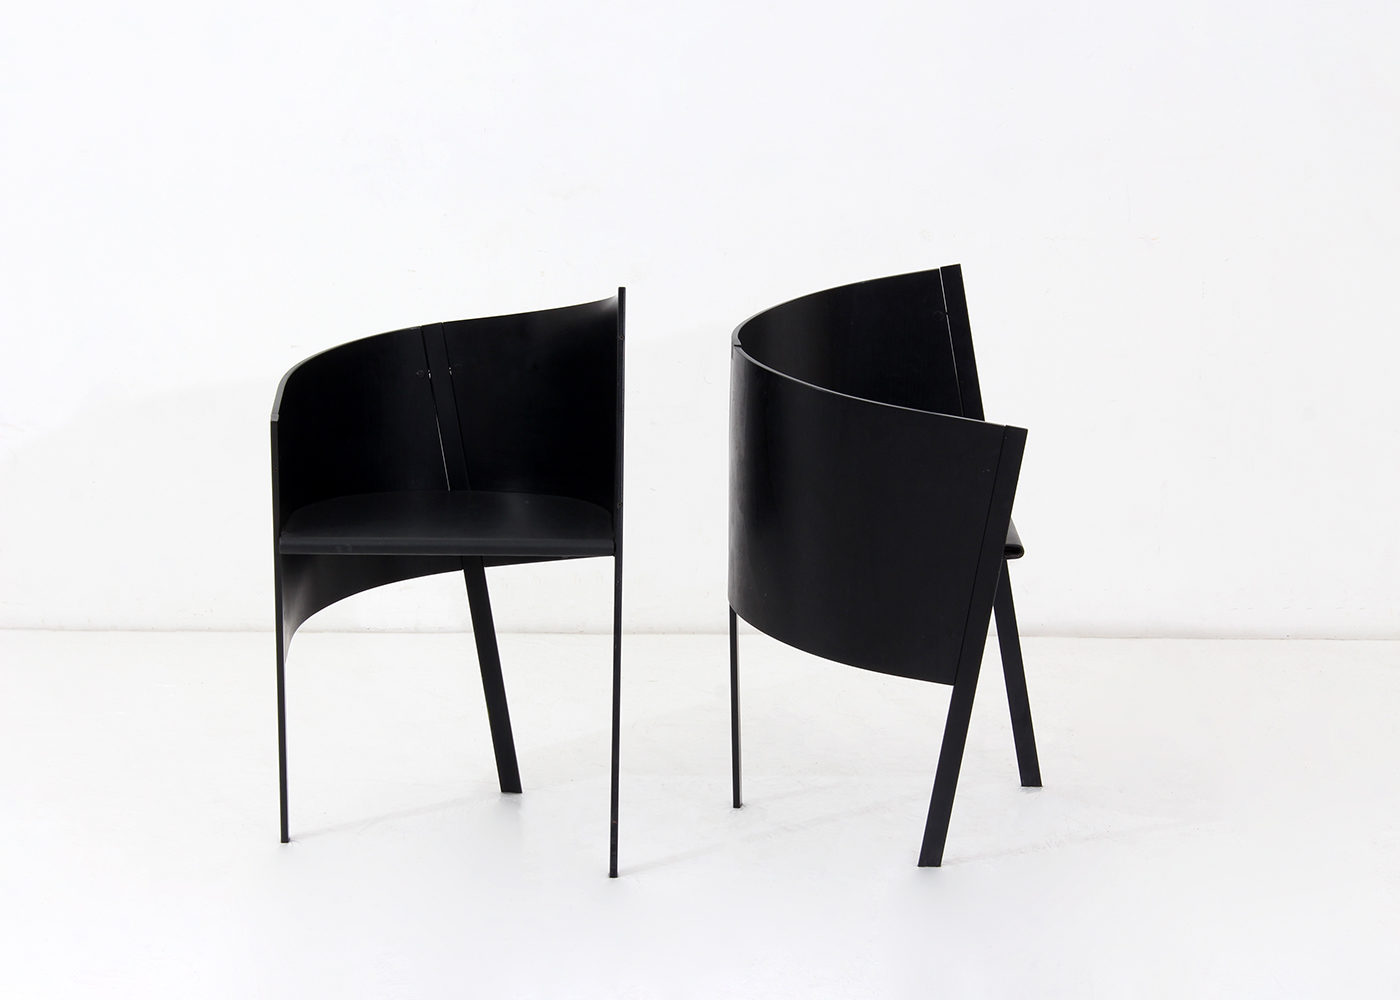 Pair of Merry Go Round amrchairs by Paolo Pallucco and Mireille Rivier